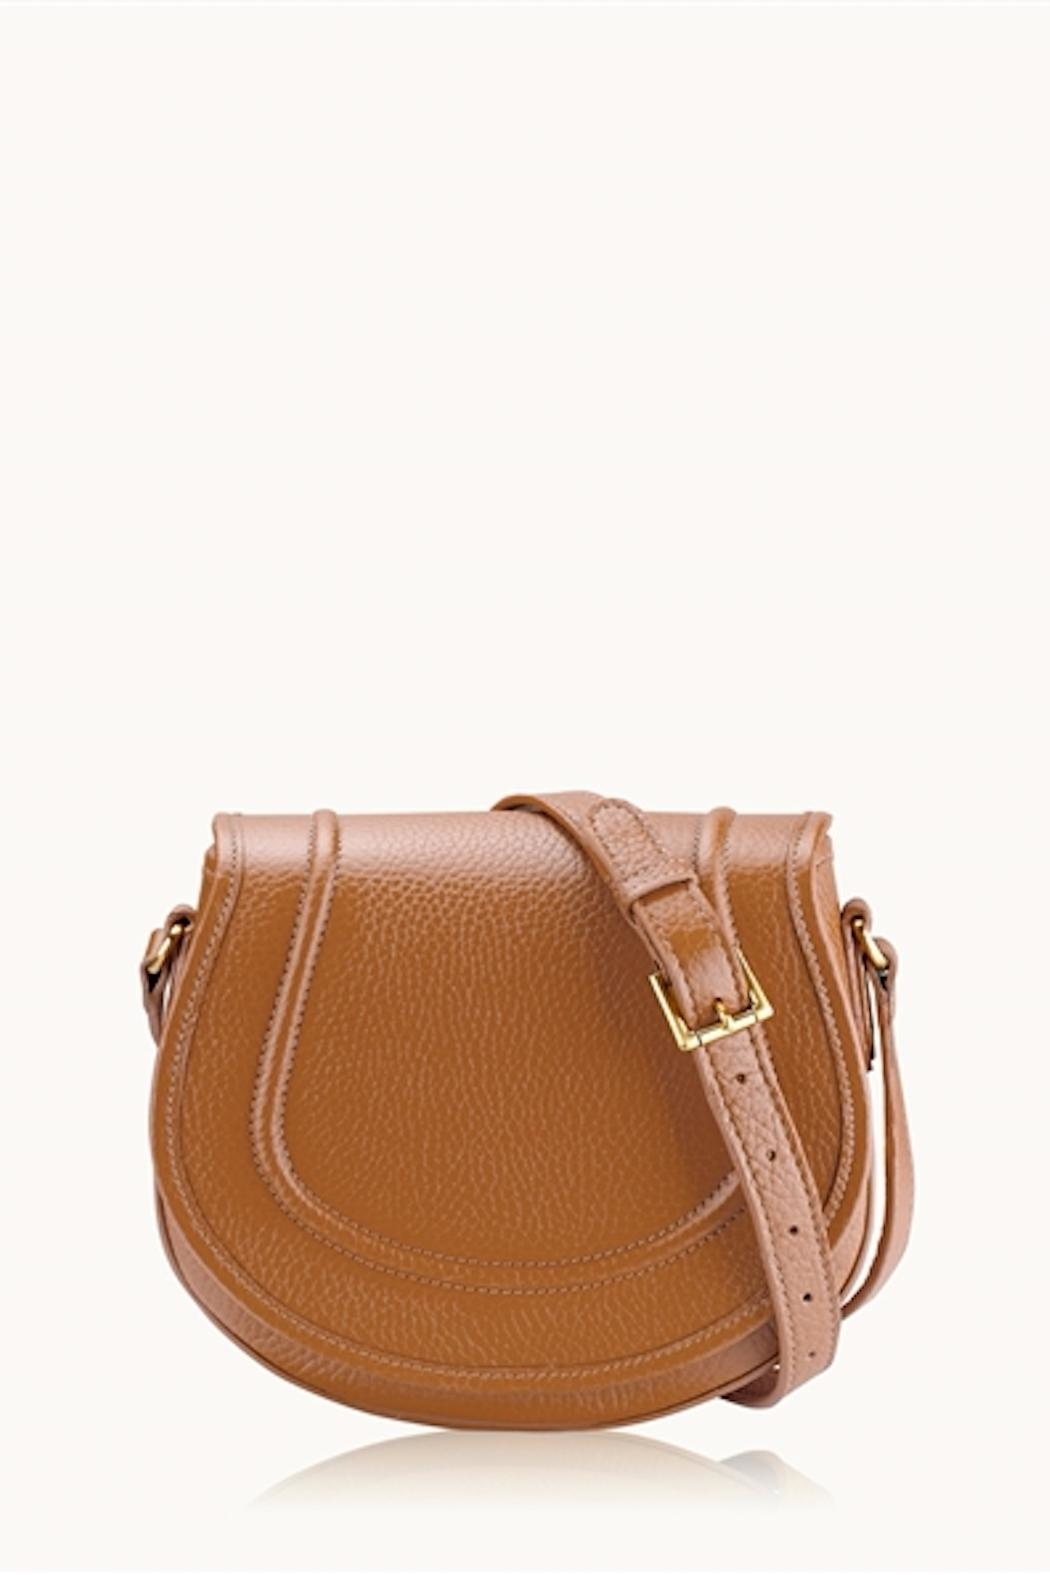 Gigi New York Jenni Saddle Bag - Front Full Image